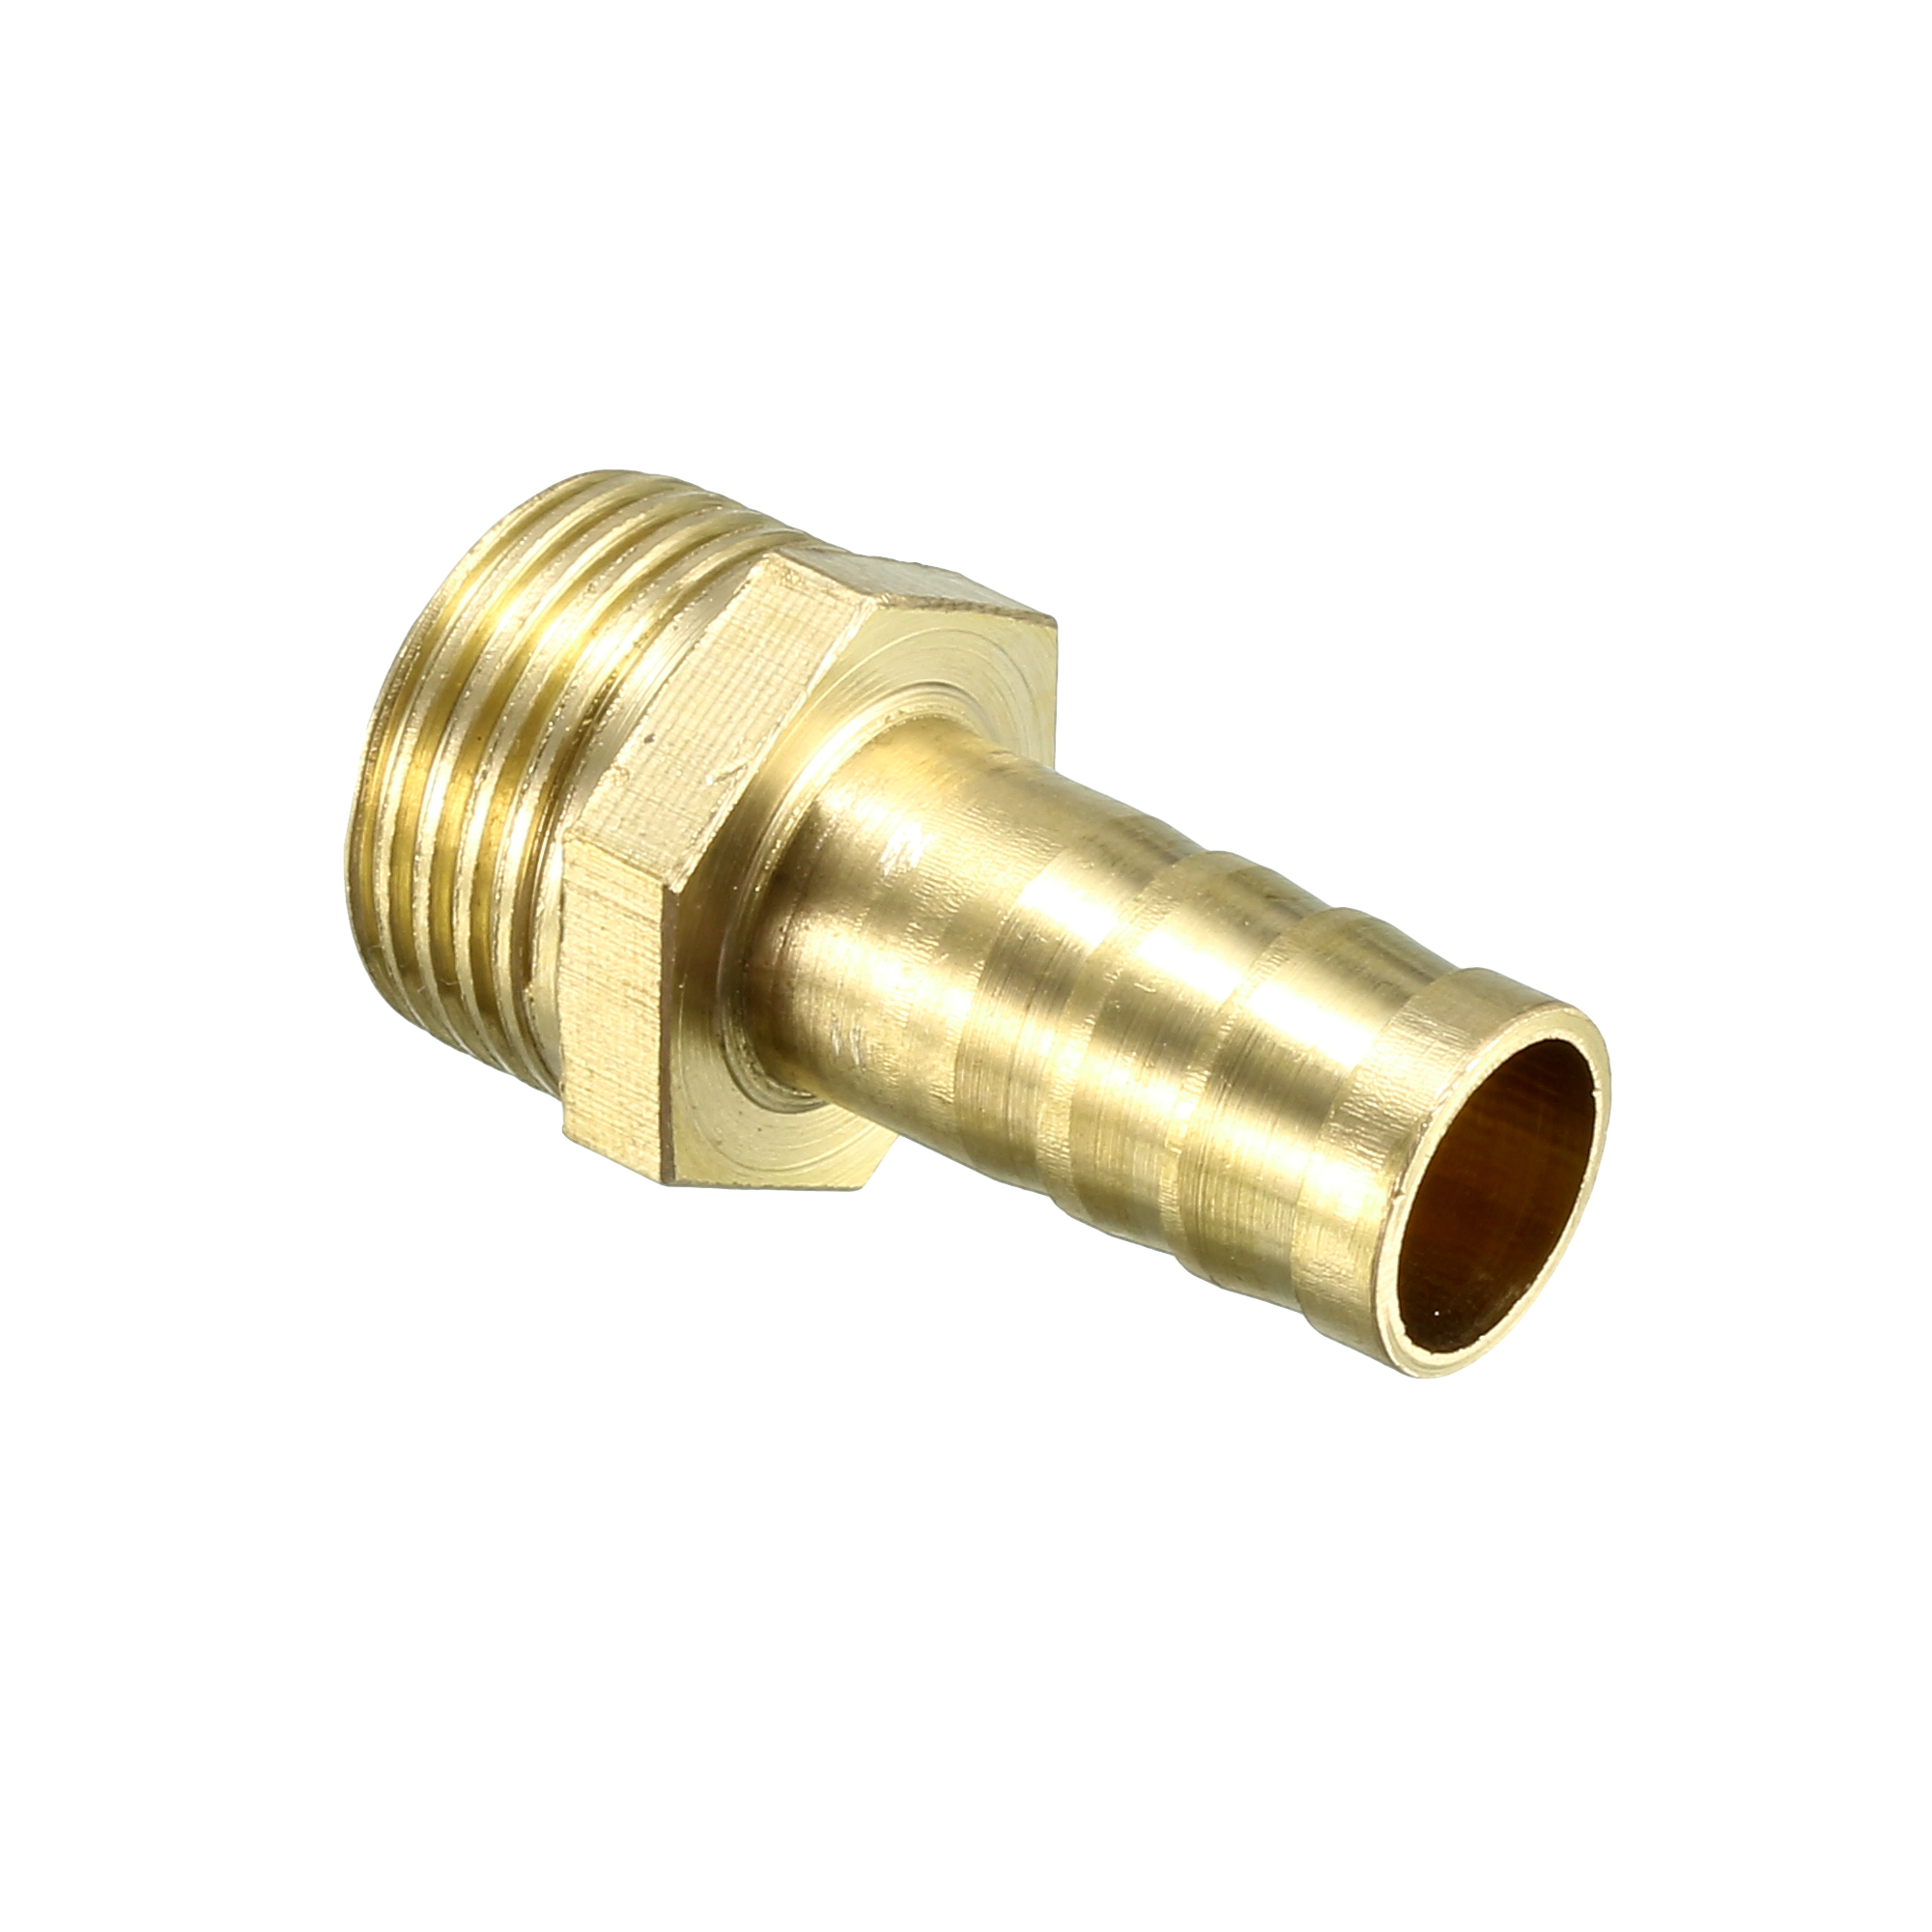 Brass Barb Hose Fitting Connector Adapter 10mm Barbed x 3/8 PT Male Pipe - image 2 of 4